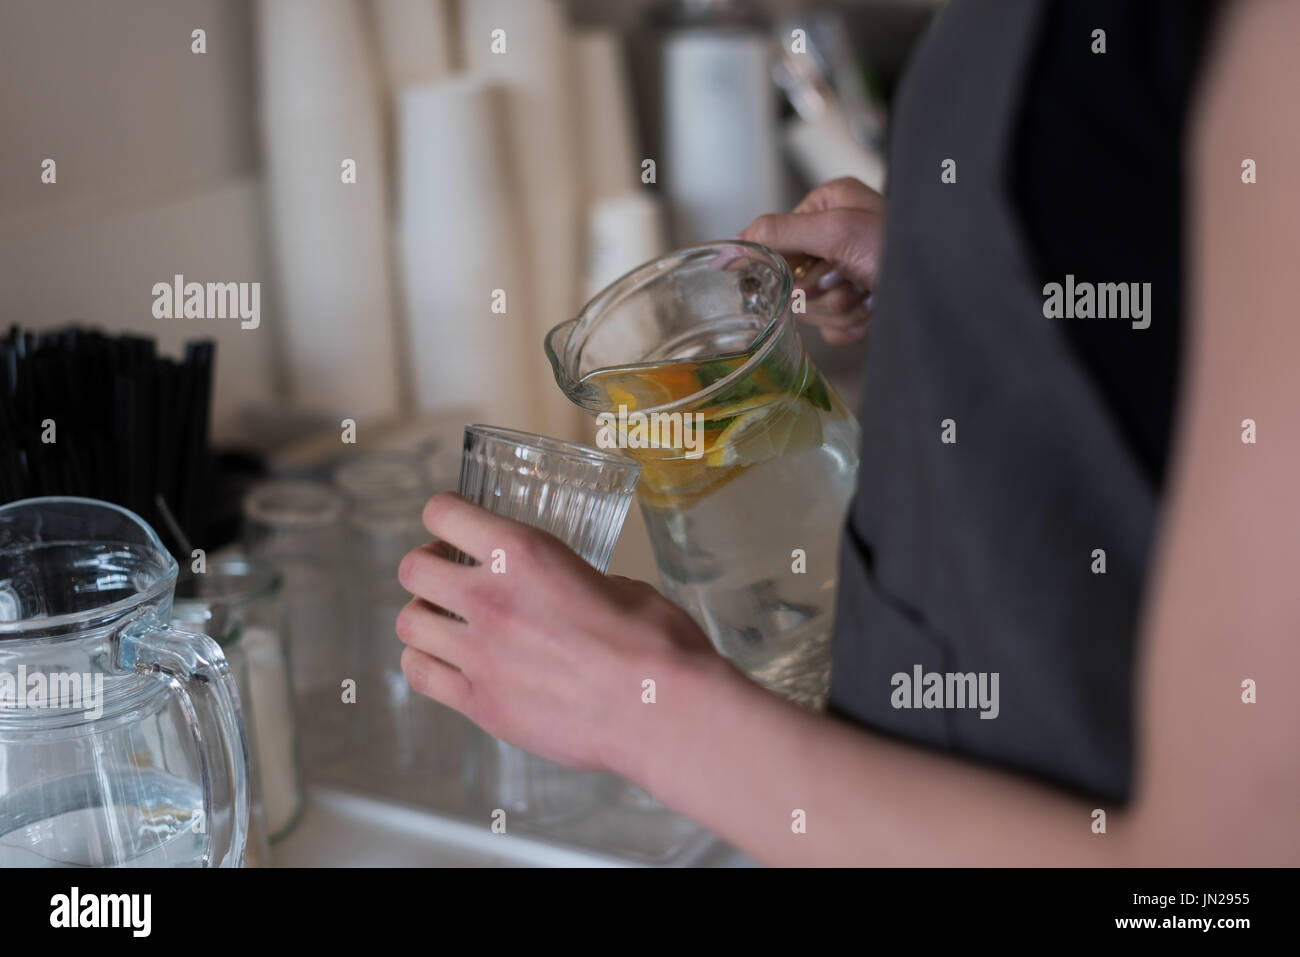 Mid section of woman pouring water in drinking glass while standing in kitchen Stock Photo